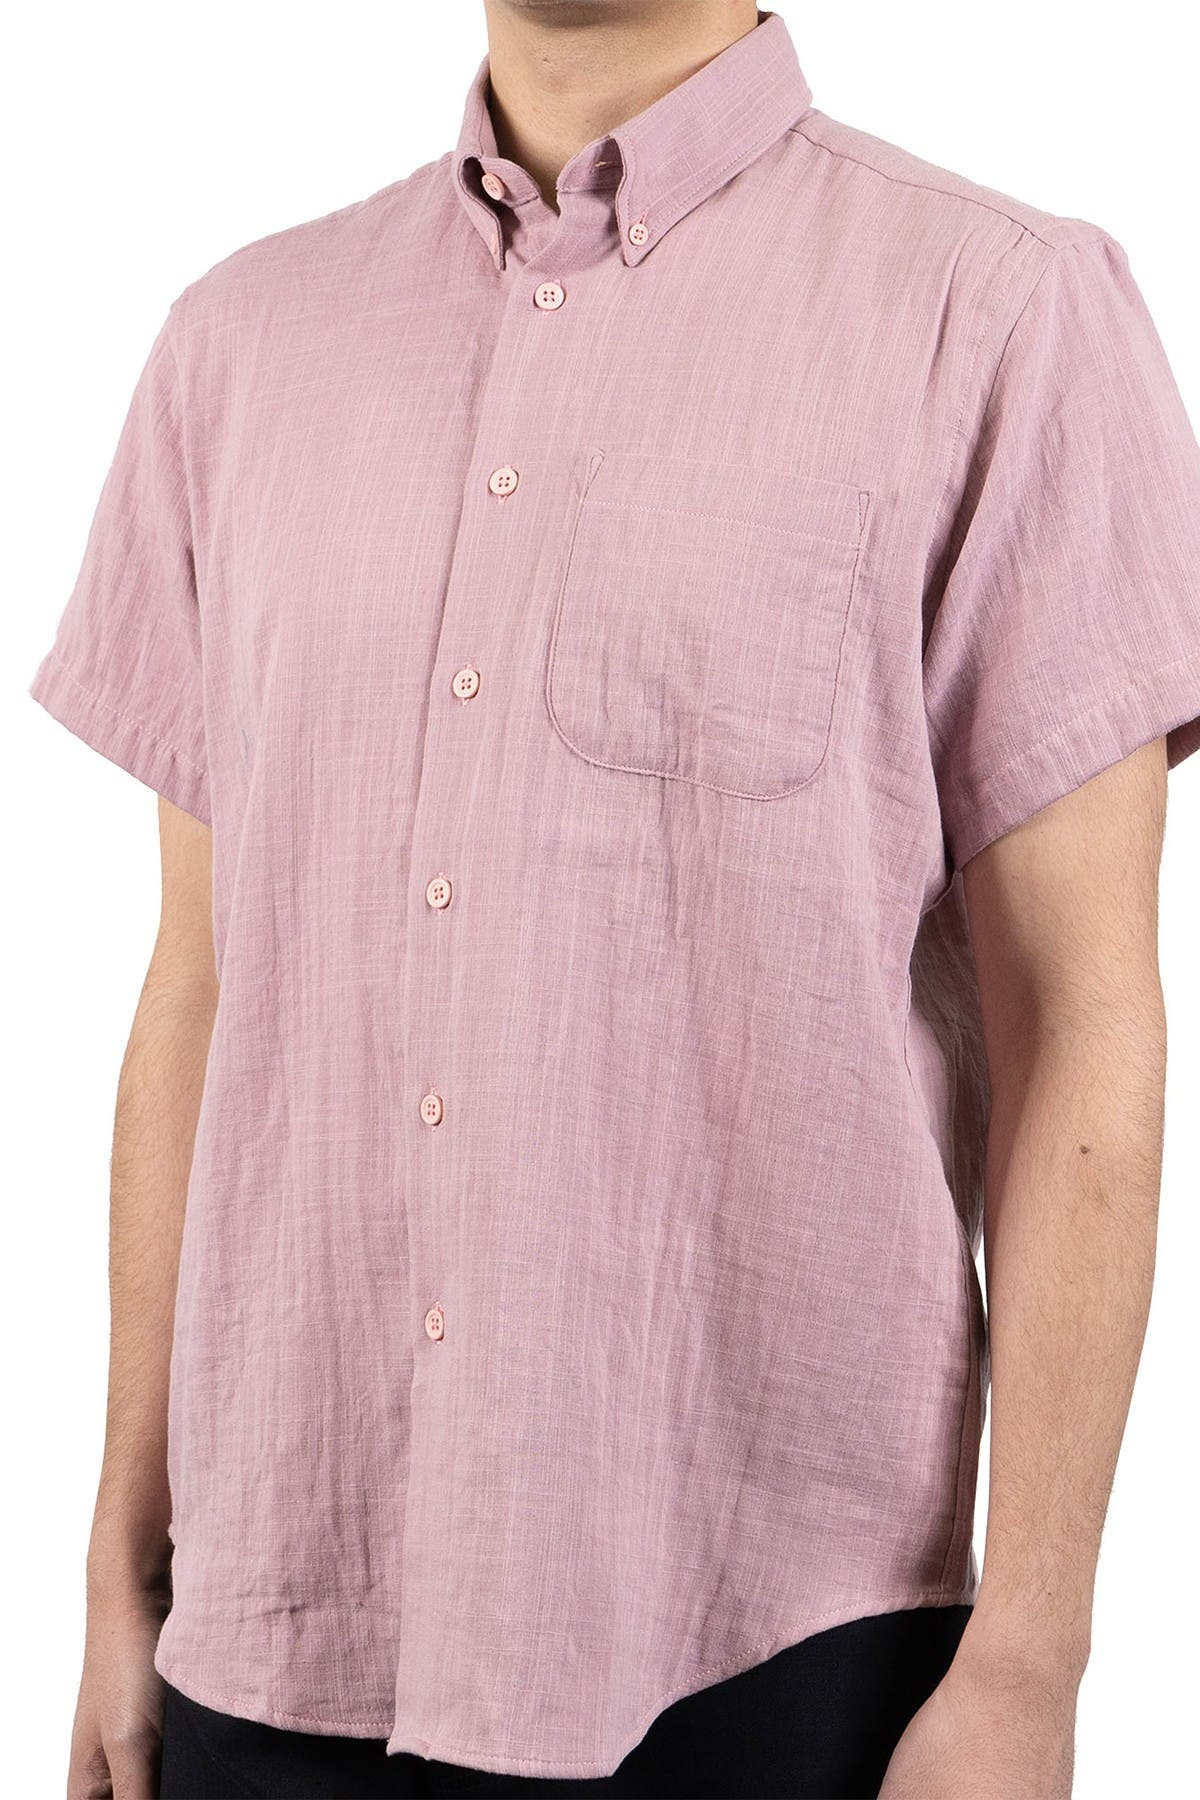 Image of Naked and Famous Double Weave Short Sleeve Shirt